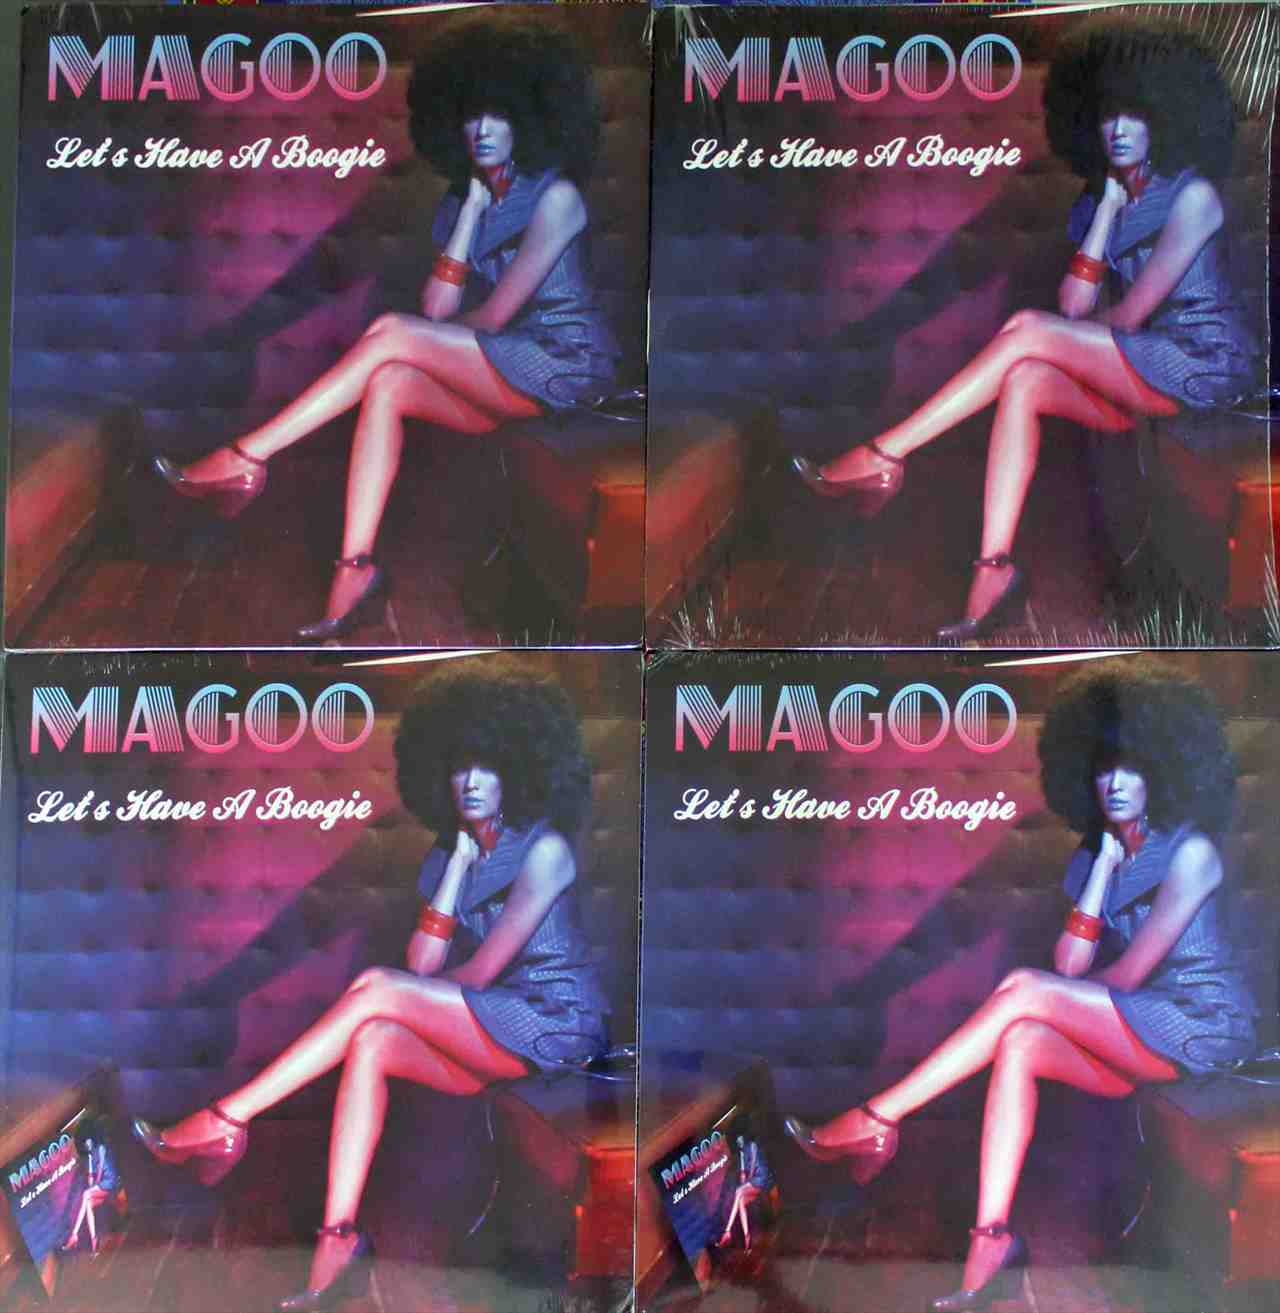 Magoo Lets Have A Boogie 0_R